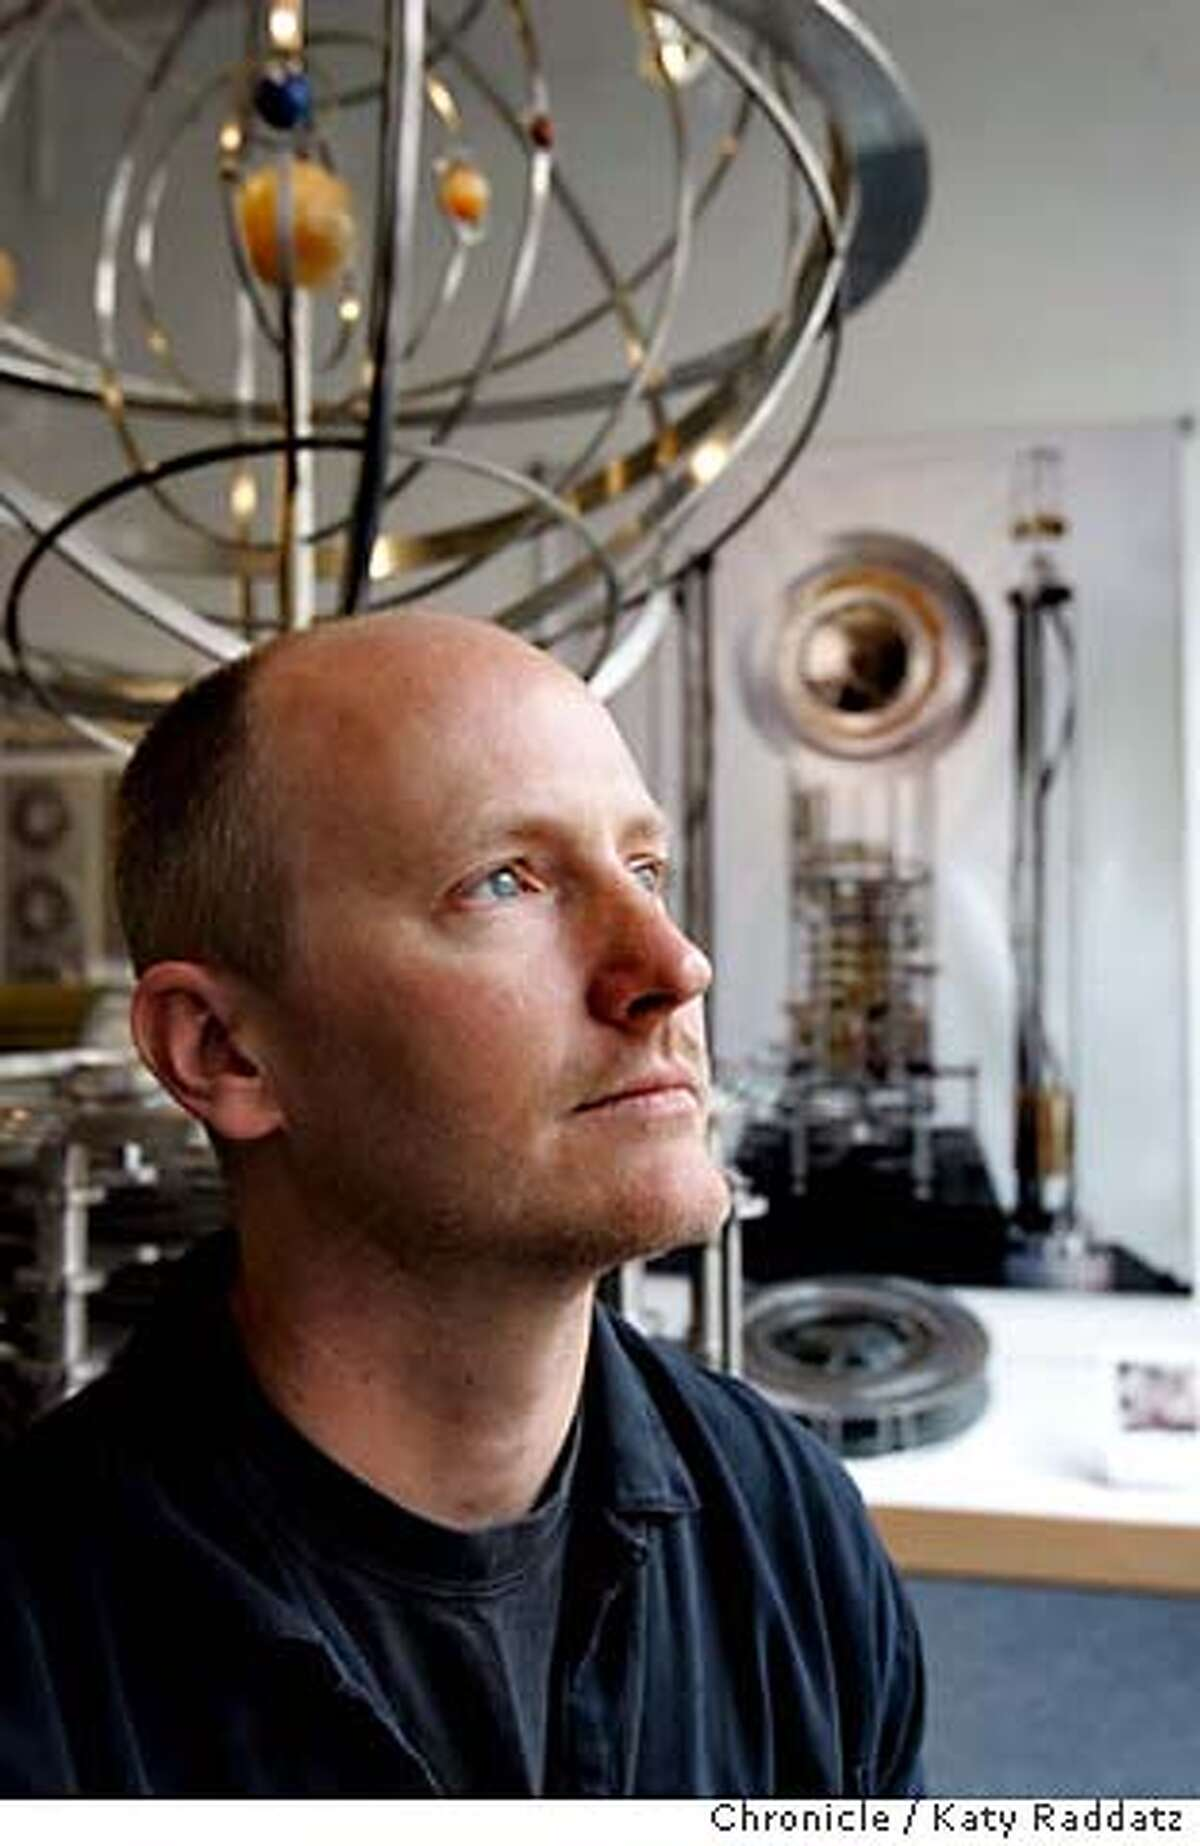 LONGNOW30_023_RAD.jpg SHOWN: Alexander Rose, the executive director of the Long Now Foundation. The model just behind Alexander is the prototype of the Orrery, which is the planetary display for the clock. The poster on the wall shows the first prototype of the clock. The Long Now Foundation is a group based in San Francisco that, among other things, wants to put a 10,000 year clock in the middle of the Nevada desert and store information and languages in forms that people hundreds of centuries from now will be able to benefit from. Photo taken on 7/14/06, in San Francisco, CA. (Katy Raddatz/The S.F.Chronicle) **Alexander Rose, Orrery Mandatory credit for photographer and the San Francisco Chronicle/ -Mags out